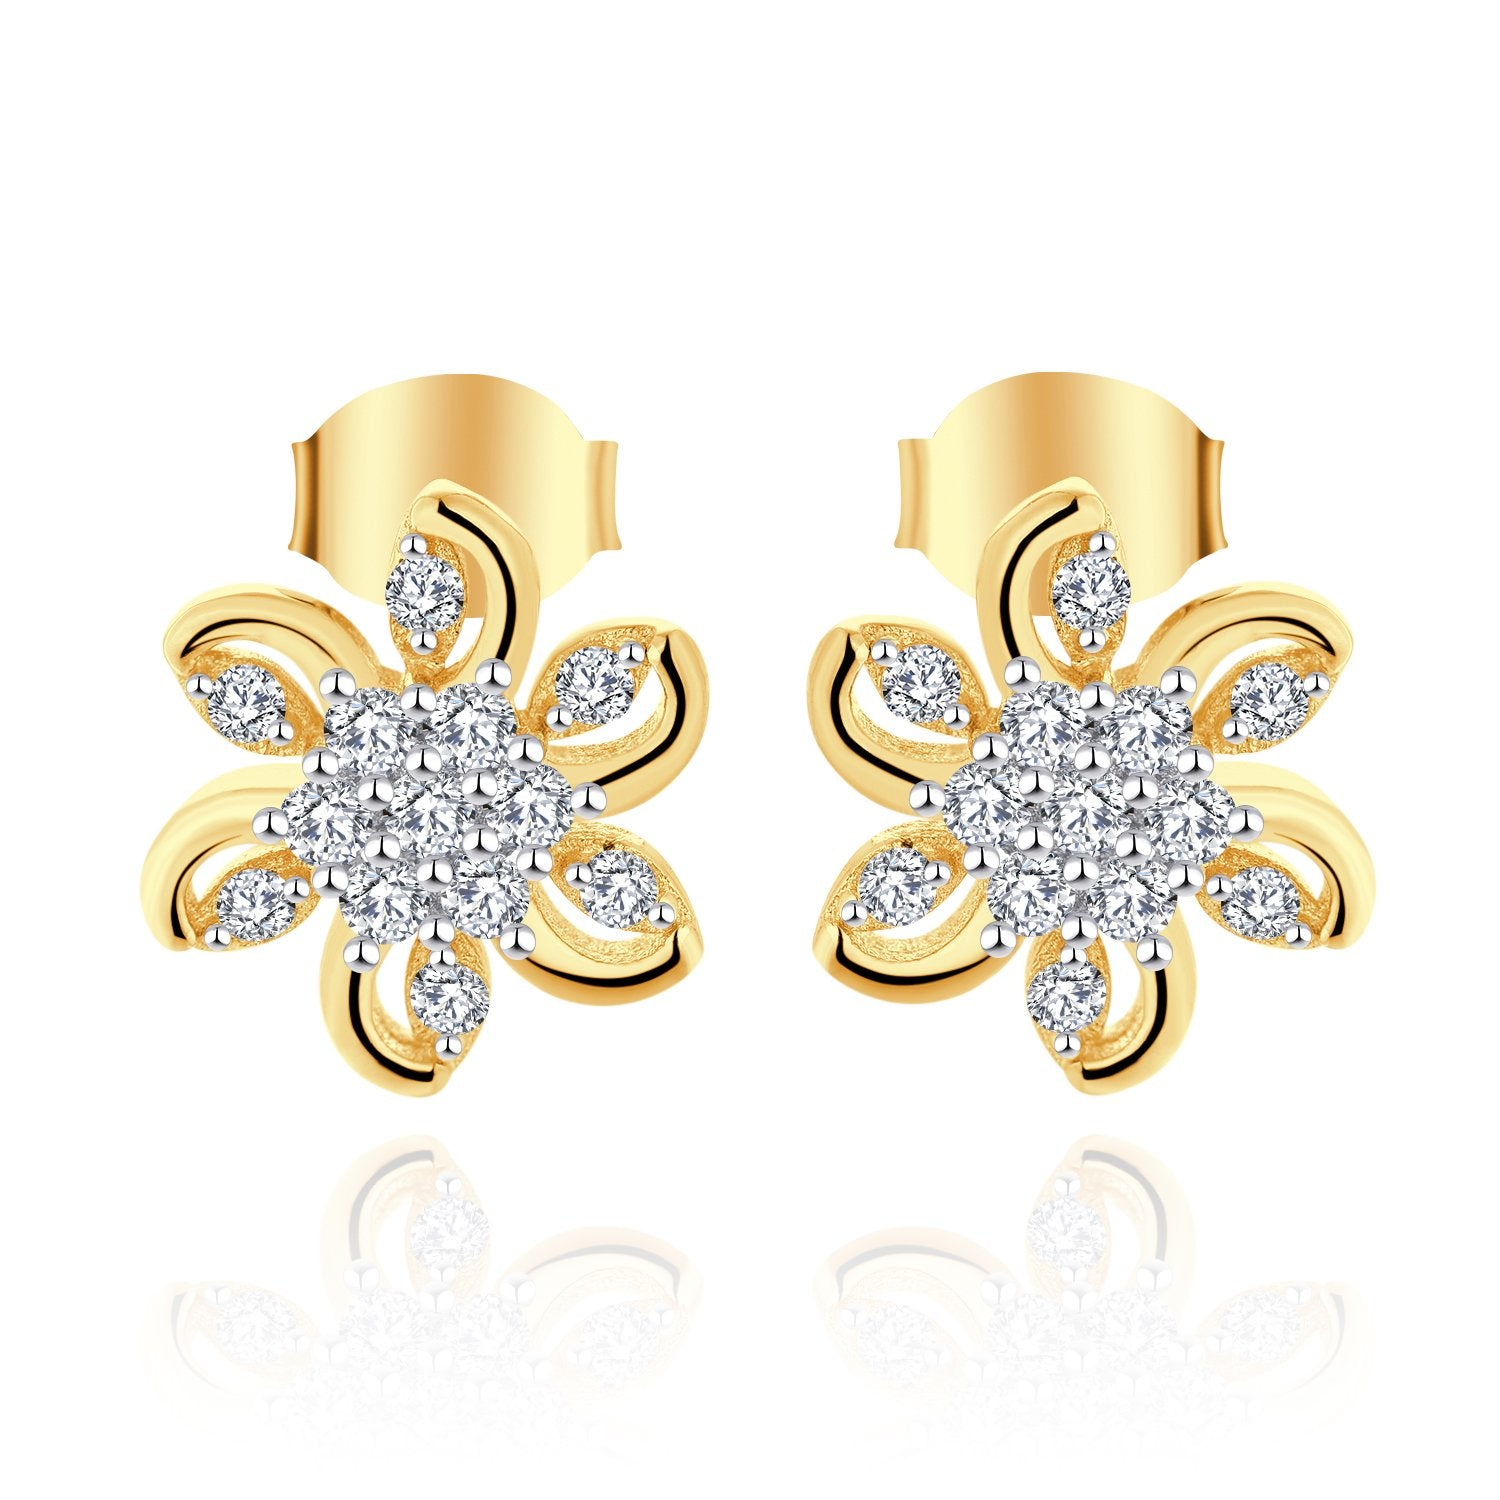 Farjary Ladies Elegant 9K Yellow Gold  Flower Stud Earrings with 0.21cttw Round Brilliant Diamond